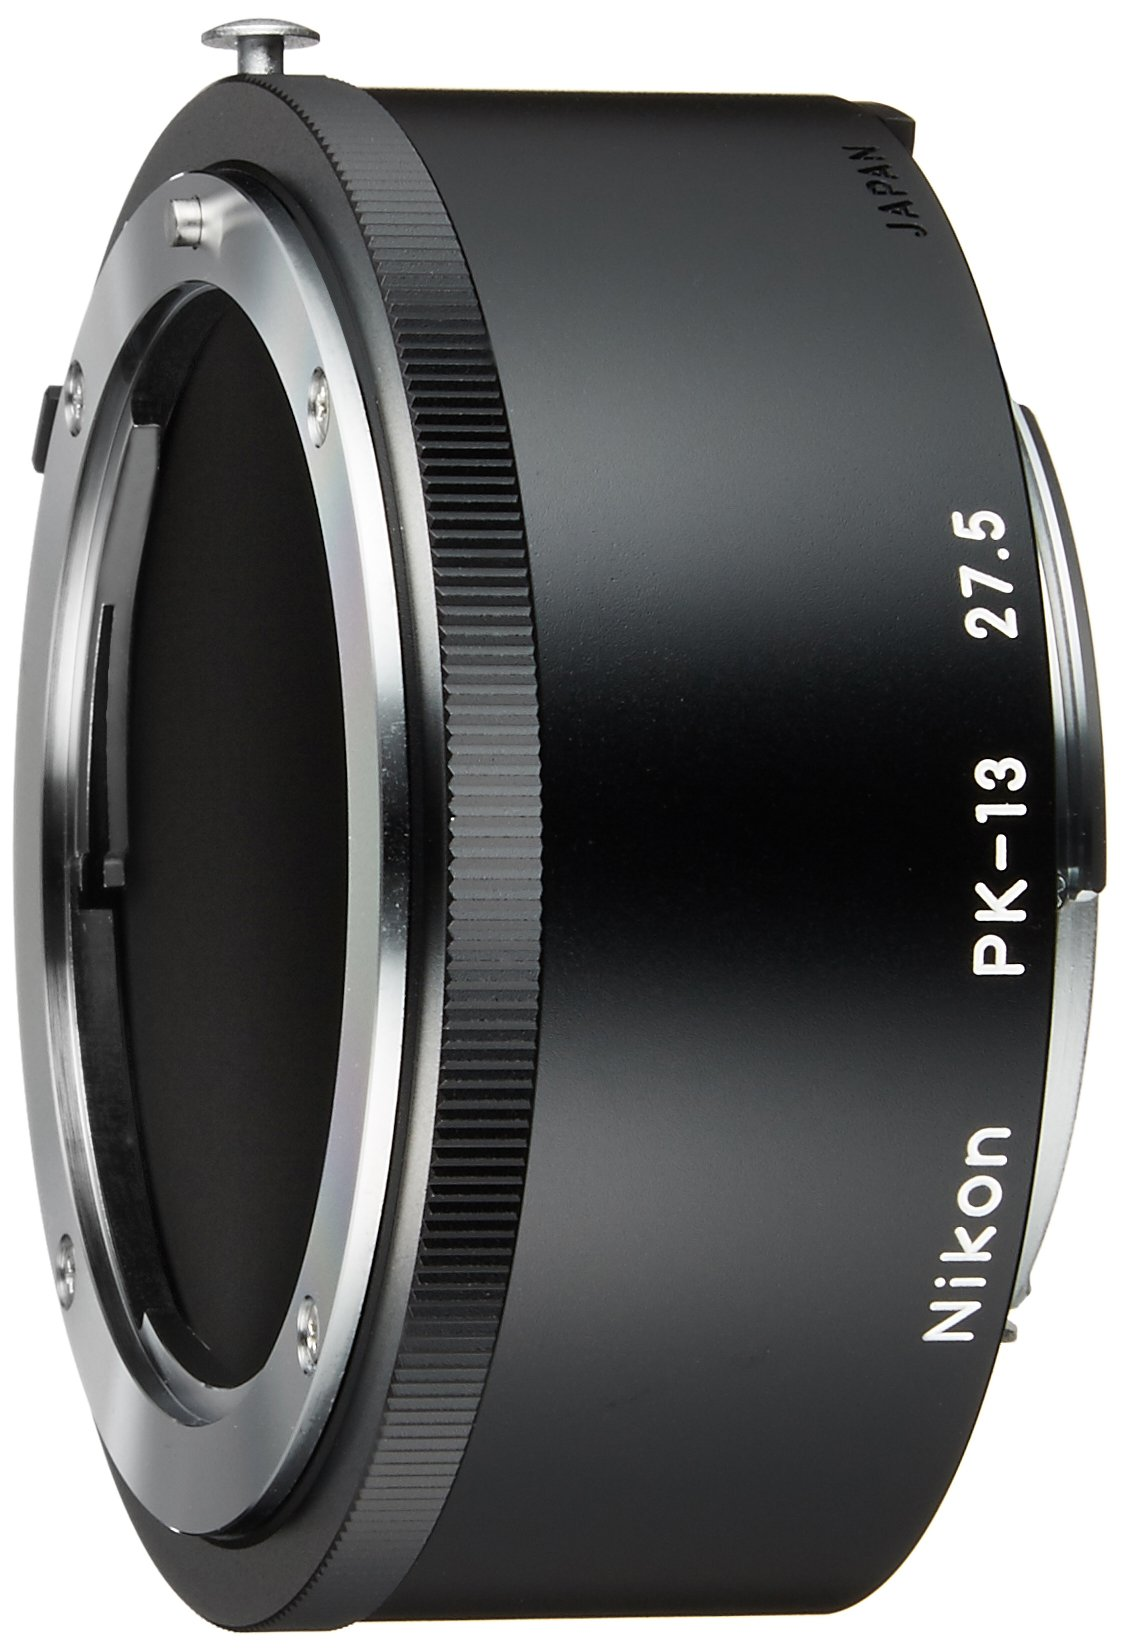 Nikon Pk-13 Auto Extension Ring by Nikon